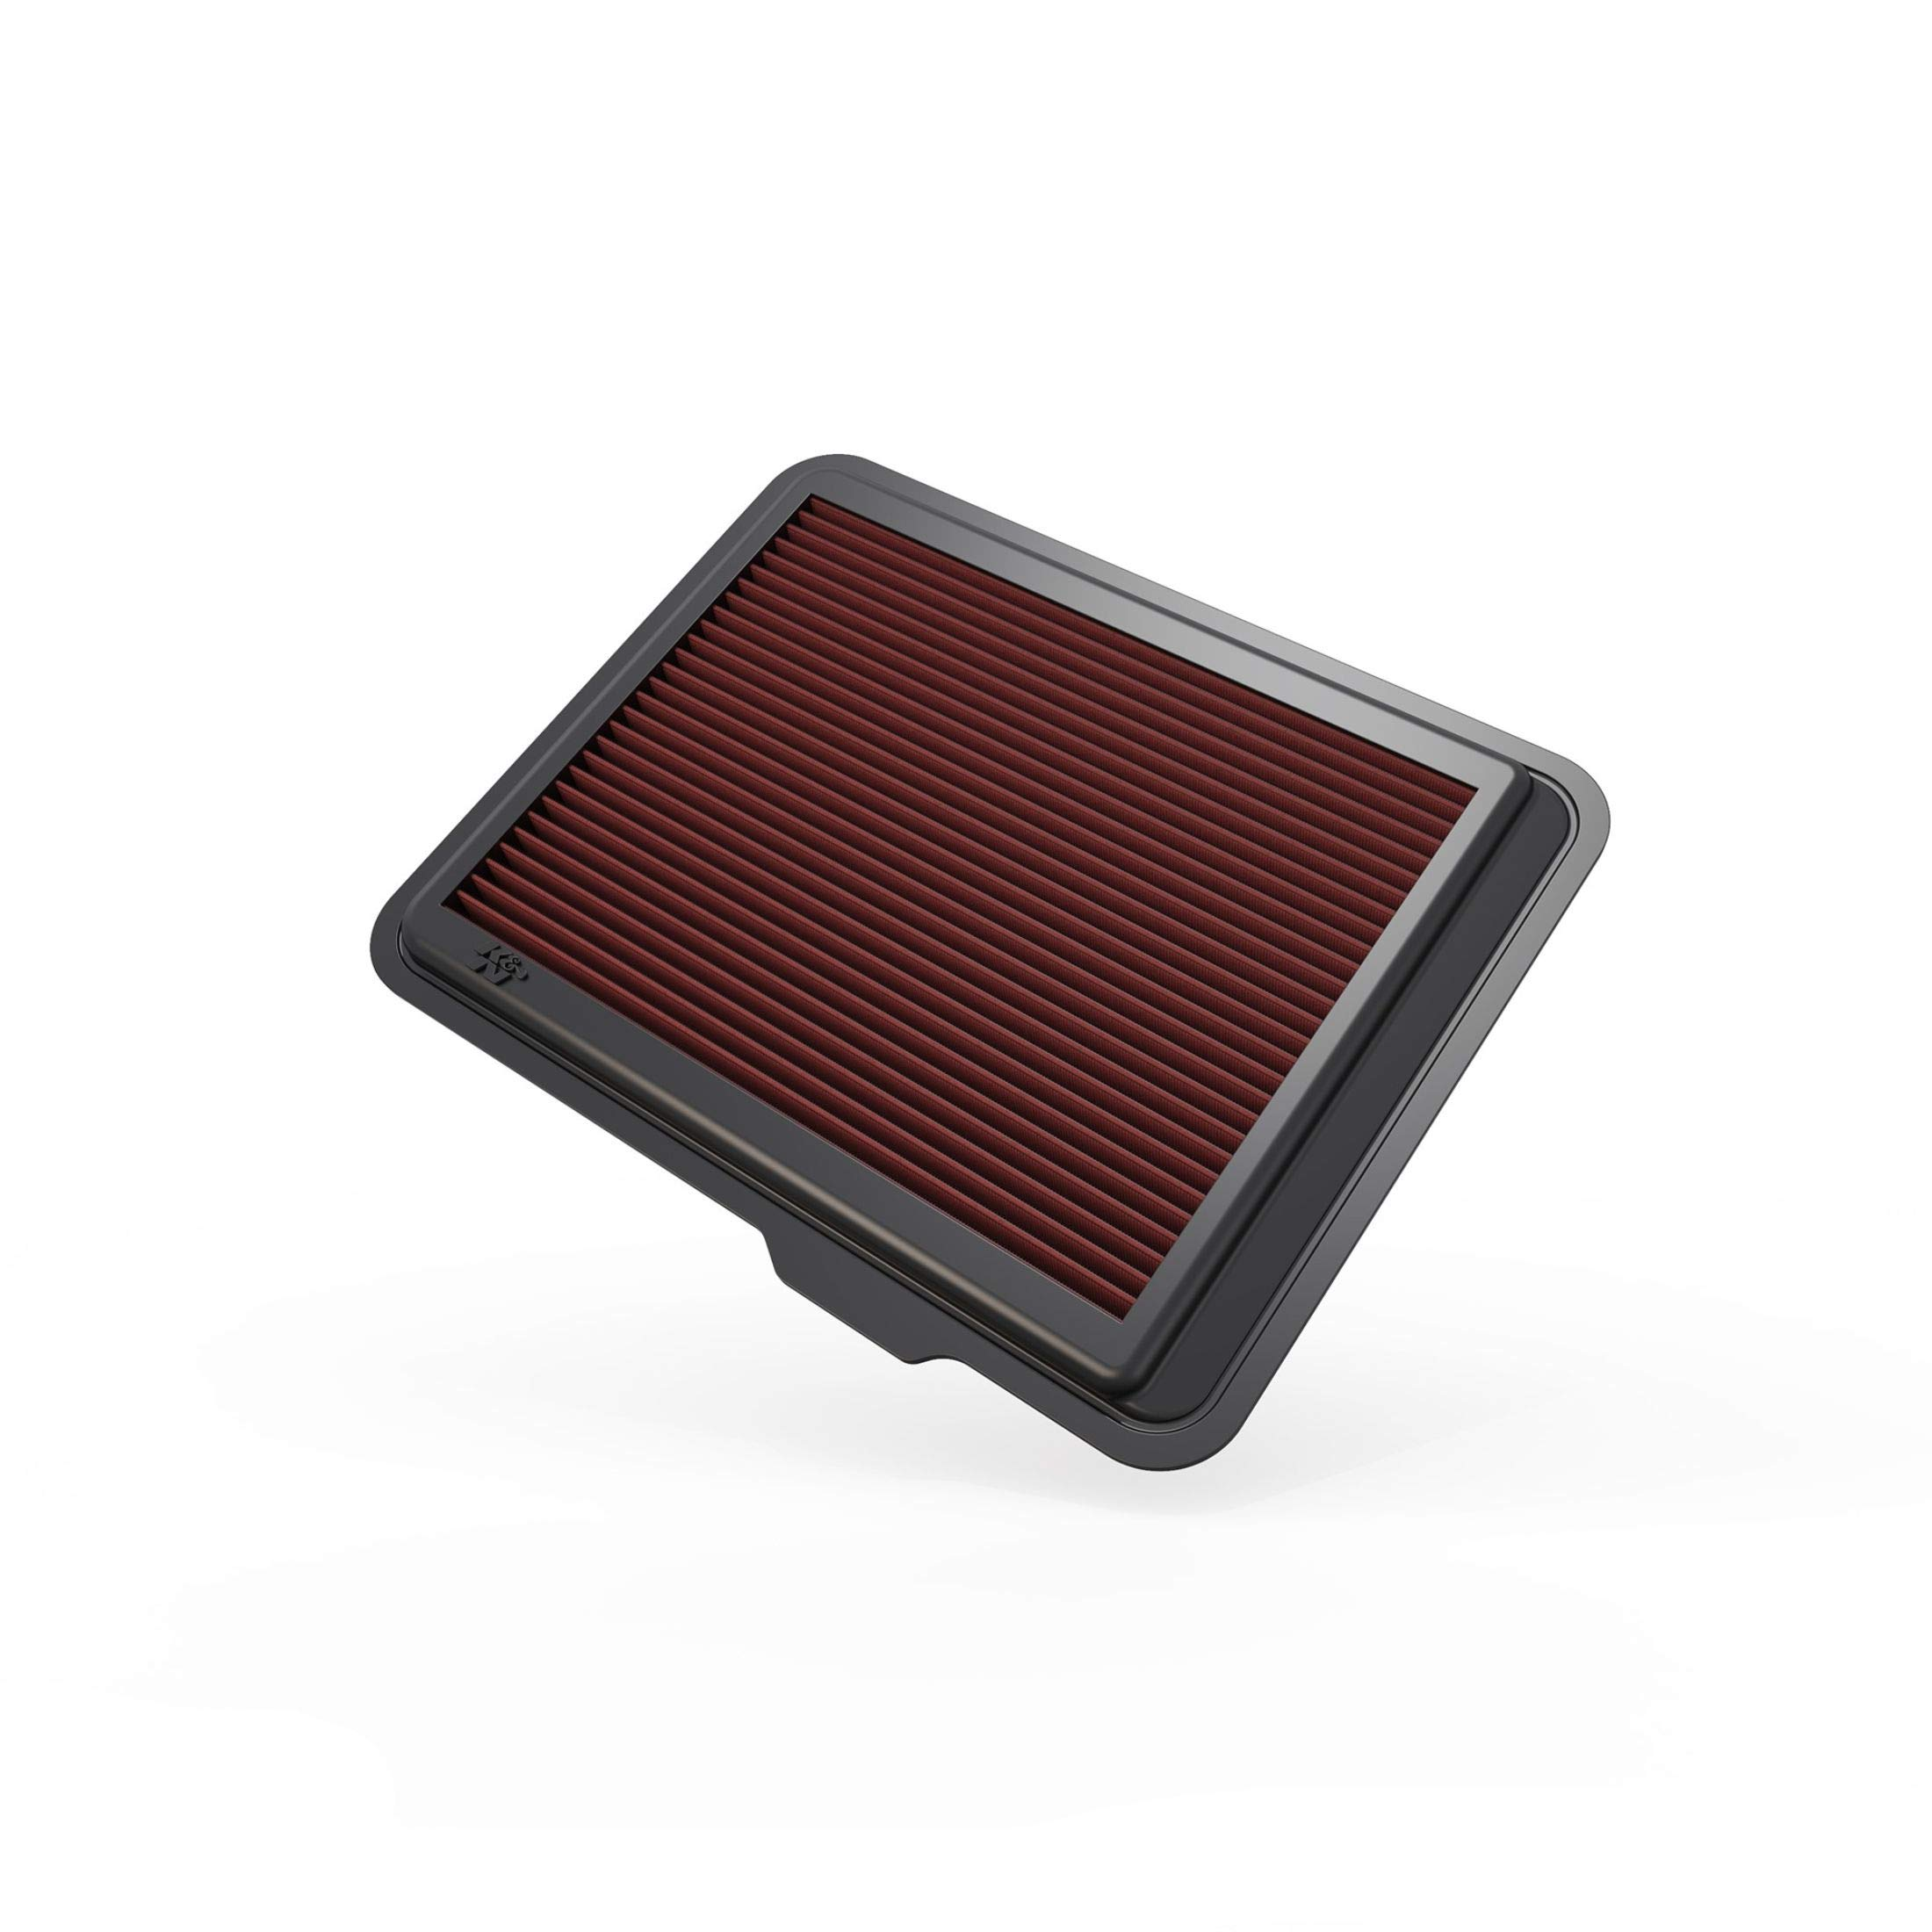 K&N Engine Air Filter: High Performance, Premium, Washable, Replacement Filter: Fits 2008-2012 Chevy/GMC/Hummer Truck and SUV (Colorado, Canyon, H3, H3T), 33-2408